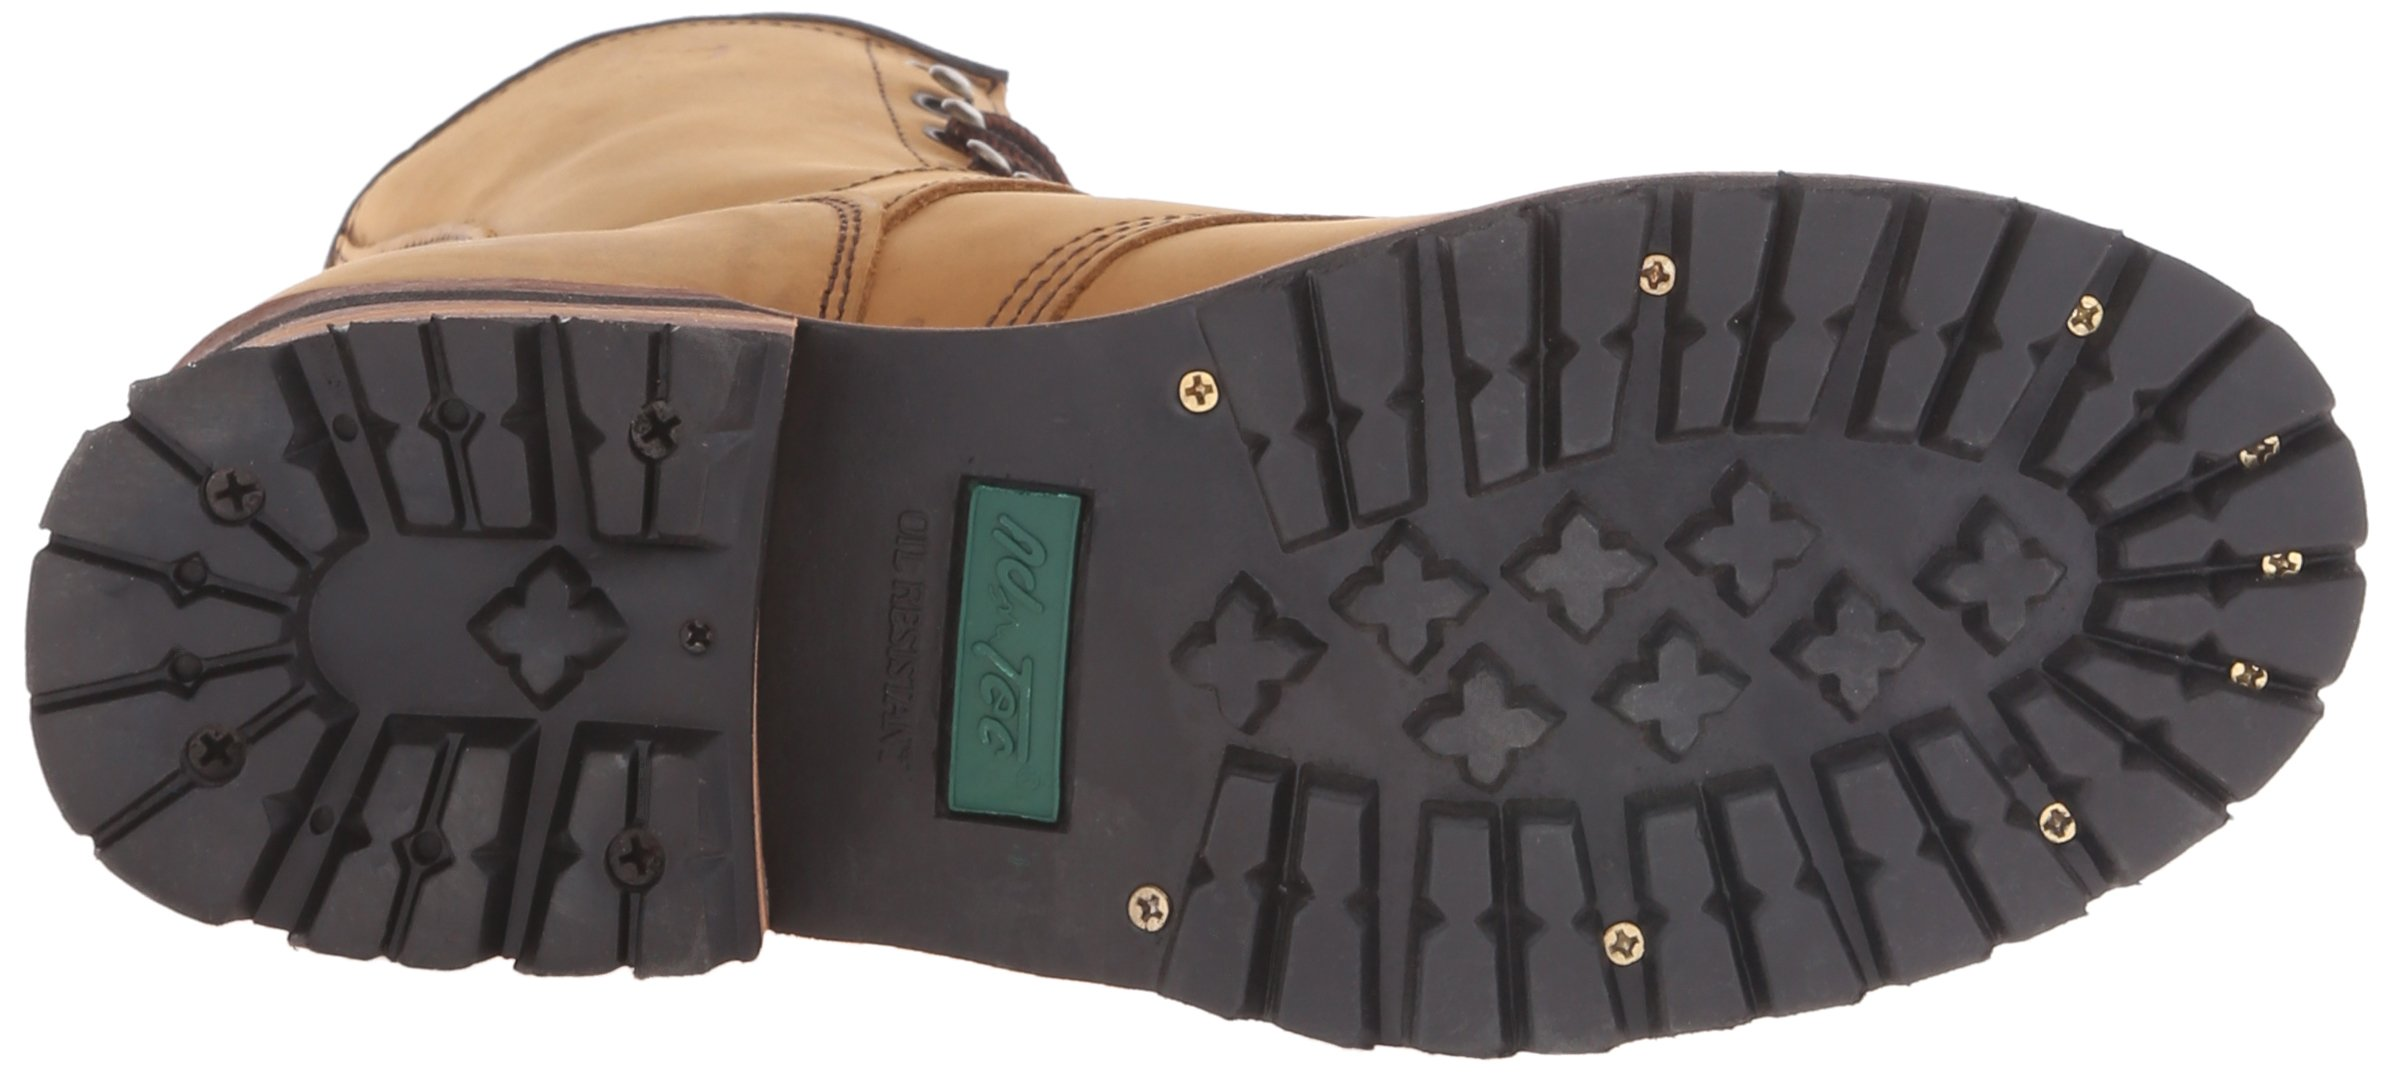 Adtec Men's 9 inch Logger Boot, Brown, 9 W US by Adtec (Image #3)